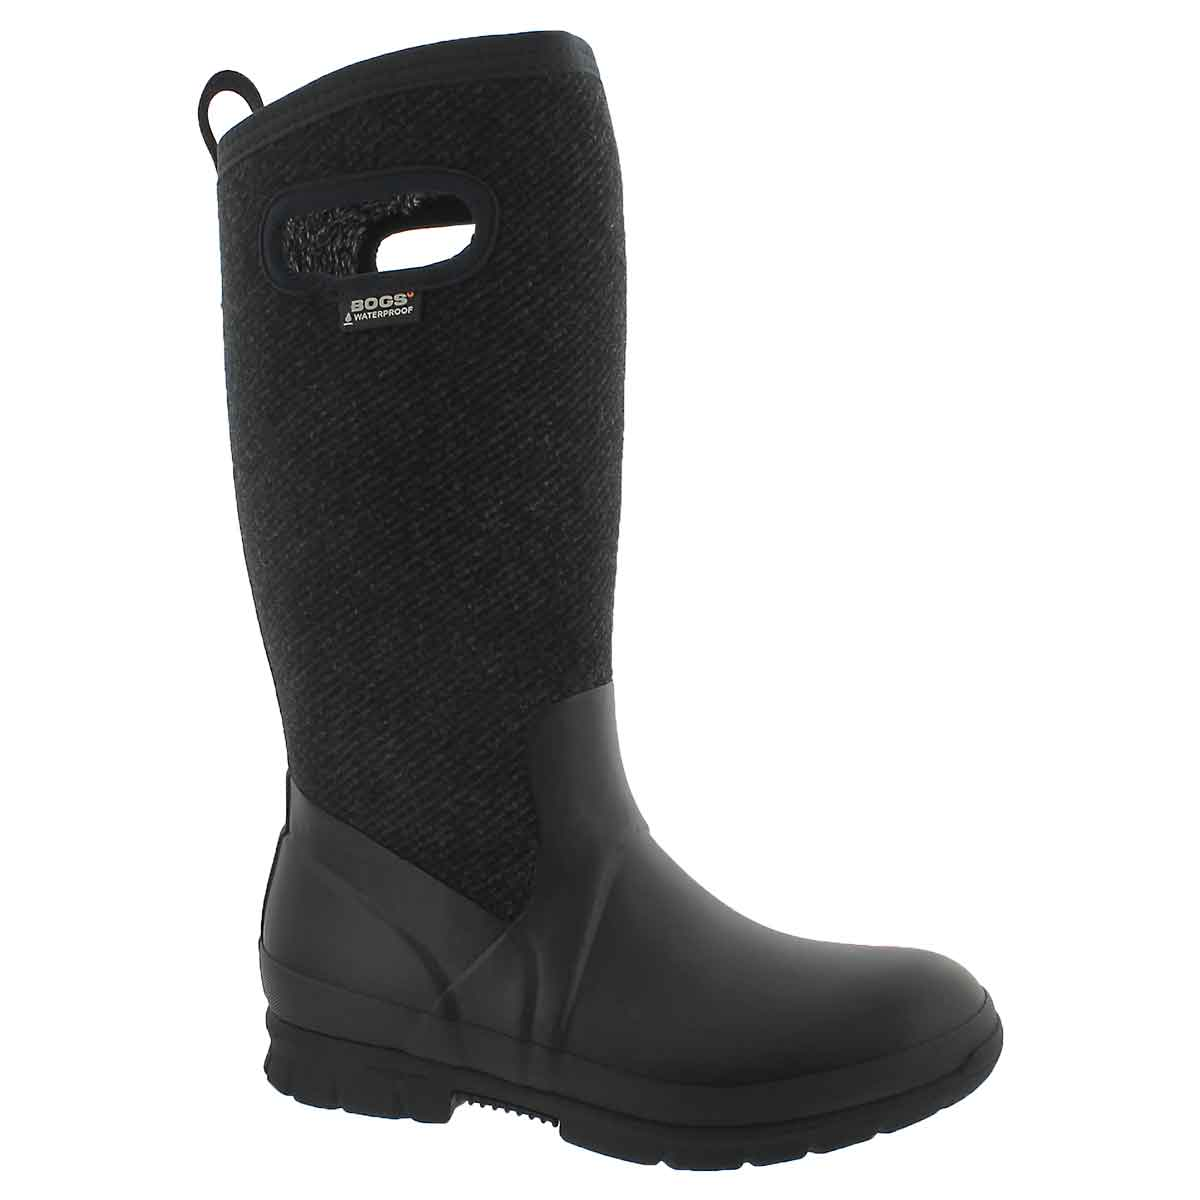 Lds Crandall Tall Wool blk wtpf boot